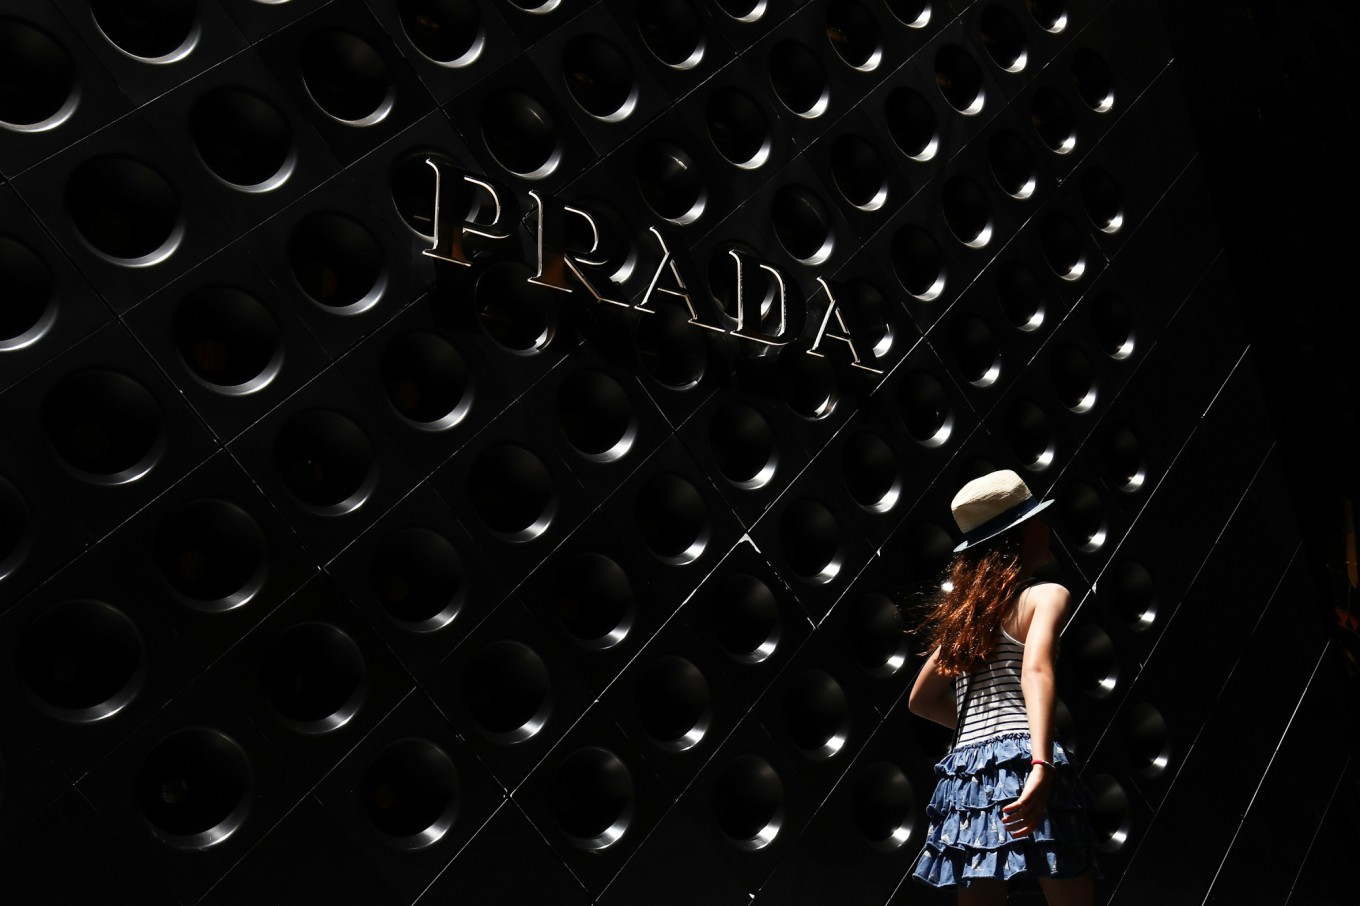 Prada fashion house to shed fur